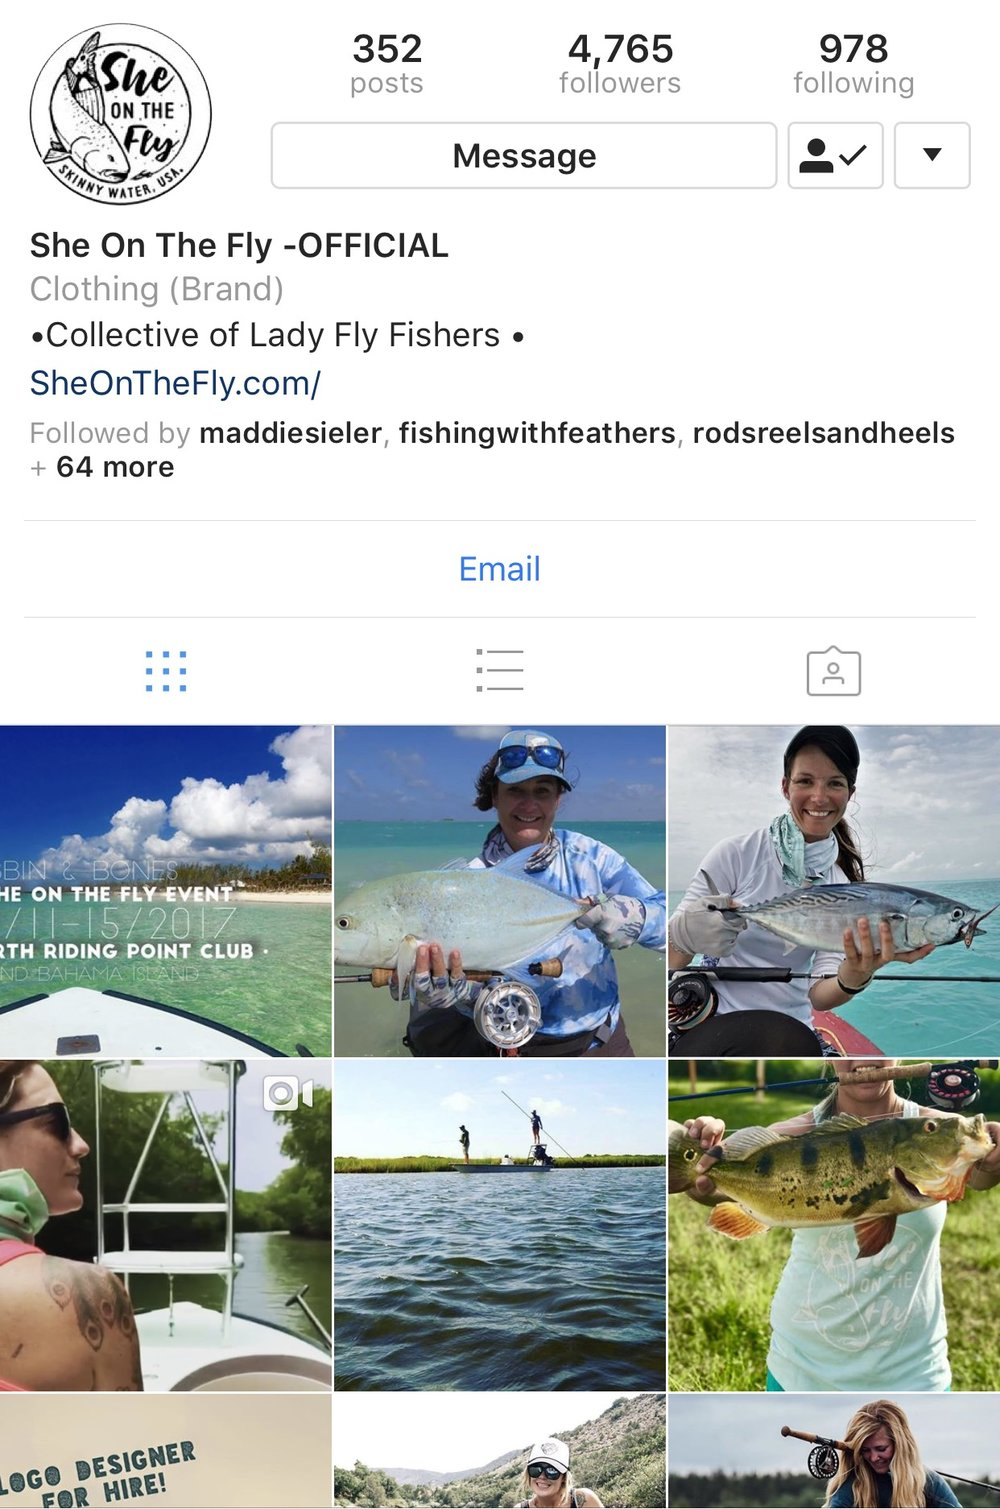 - Welcome to the official She On The Fly website. Our company was born in the winter months of 2016. The brand started as an idea with the intention of sharing, creating, and collaborating with other female anglers from around the globe. By 2017 we experienced some amazing growth and changes. Our mission will always be to uplift women, inspire them to learn more about the sport, from novice to expert. Over time our image and intention has taken an organic shift that has brought us many opportunities to get our message out there. SOTF now has the opportunity to sponsor charity events with merchandise, collaborate, create and promote  with some incredible companies in the industry.